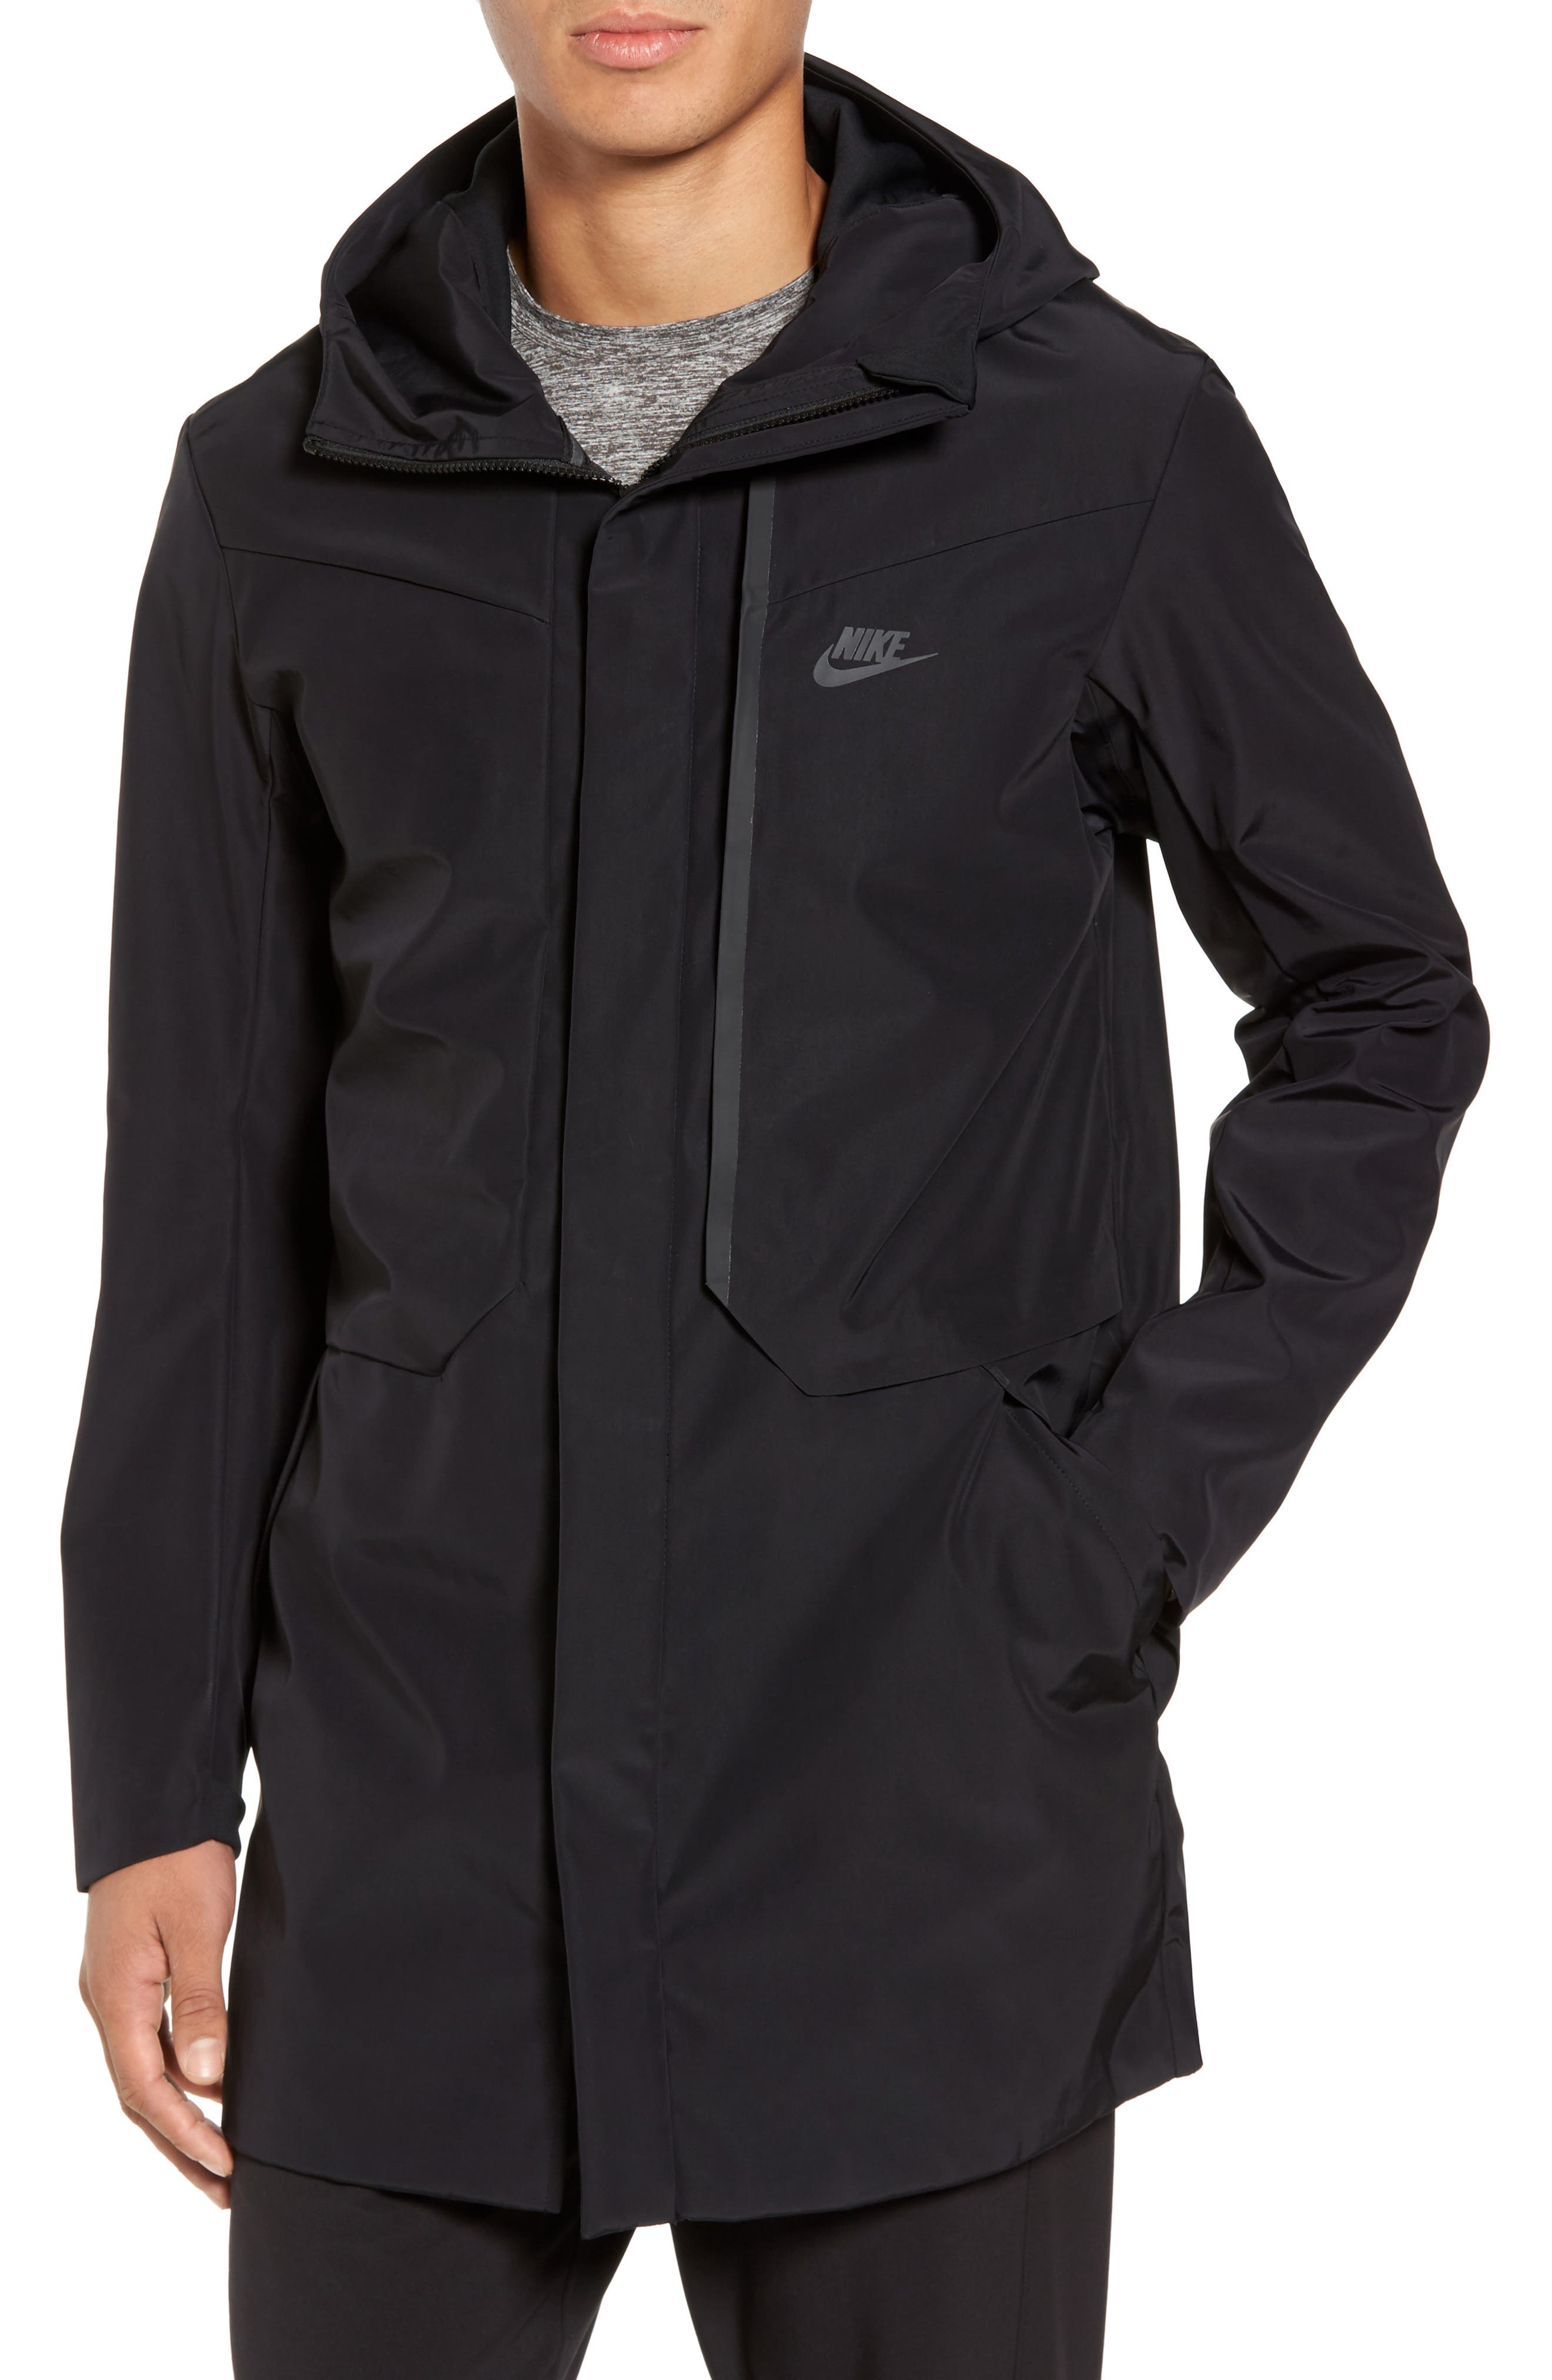 NSW Tech Track Jacket,                         Main,                         color, Black/ Black